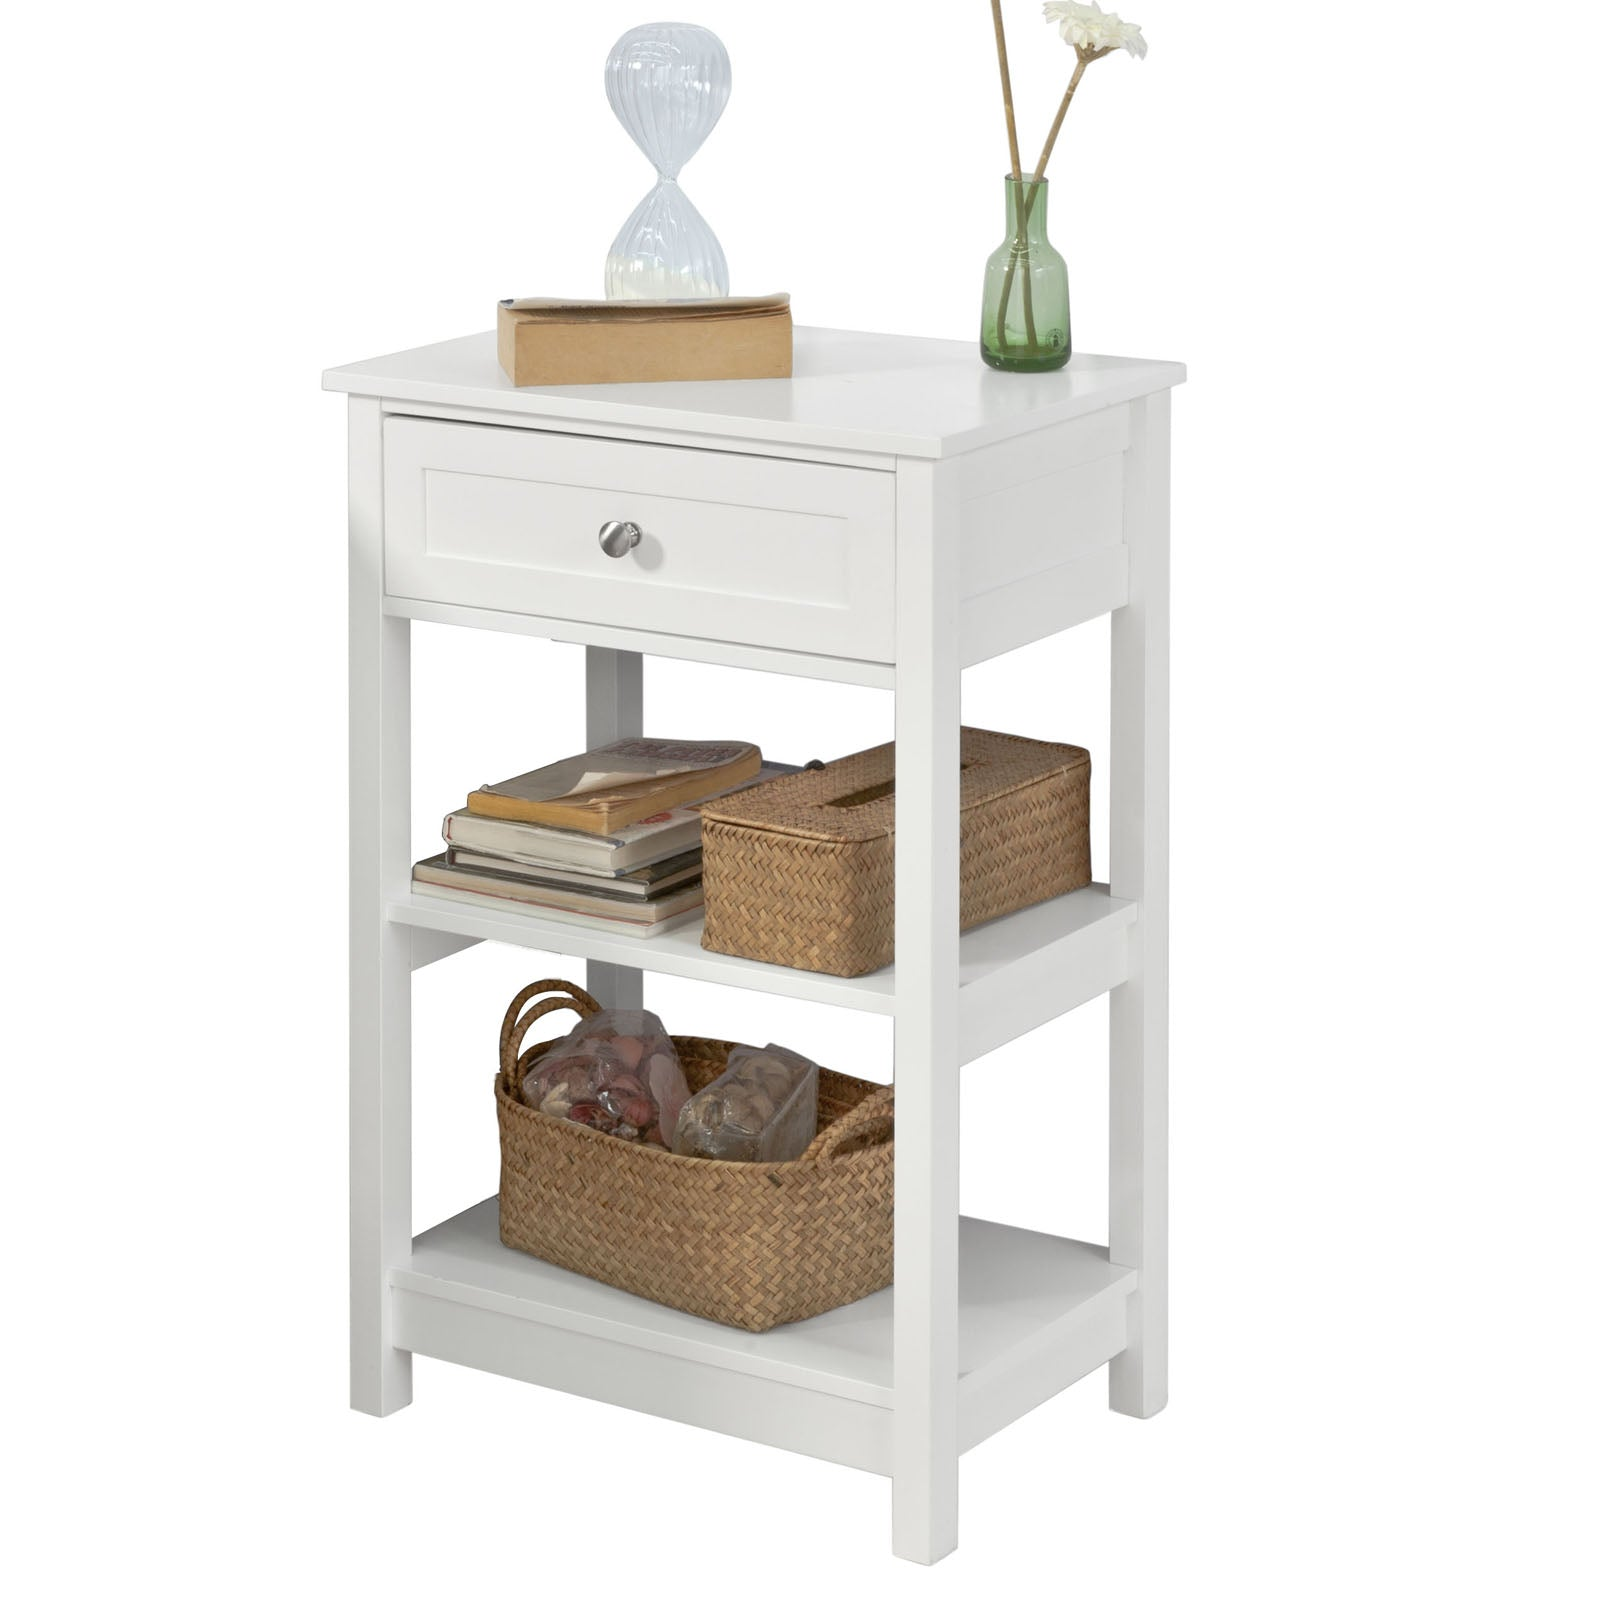 SoBuy Bedside Table Small Bedside Table White Sofa With Drawer Fbt46-W